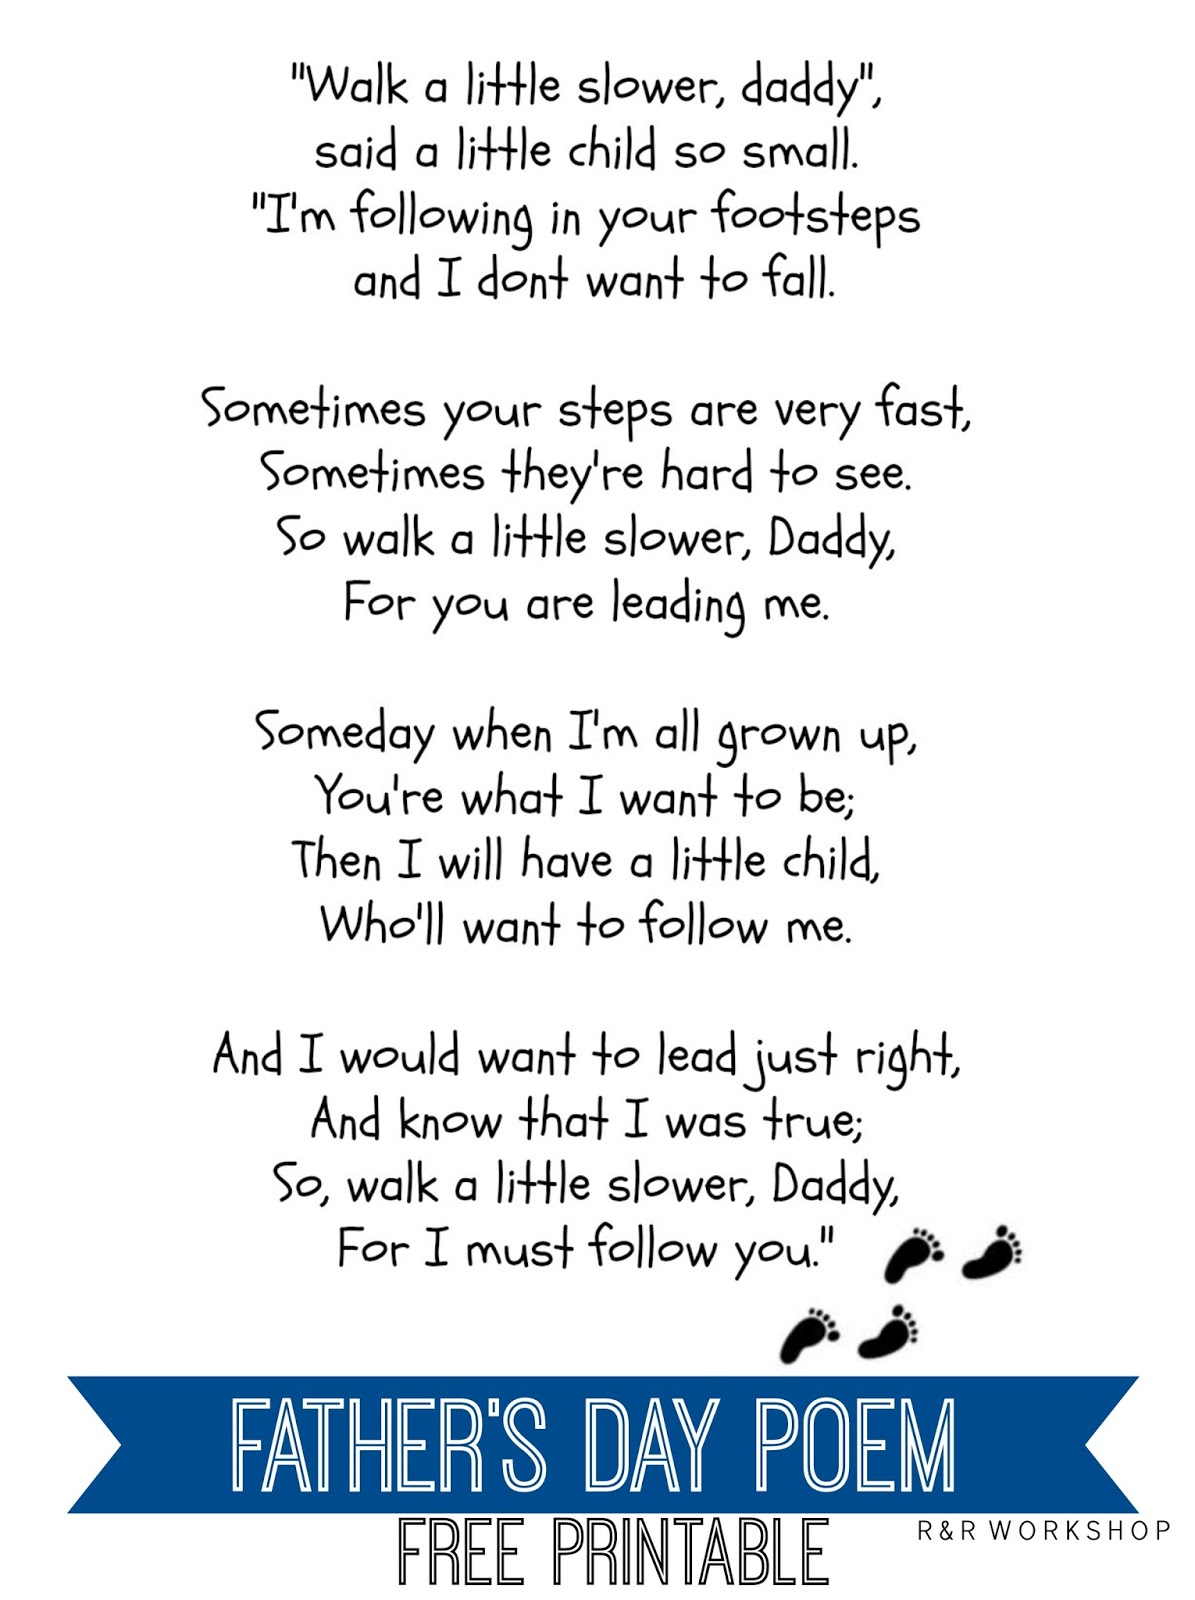 R Amp R Workshop Father S Day Poem Free Printable